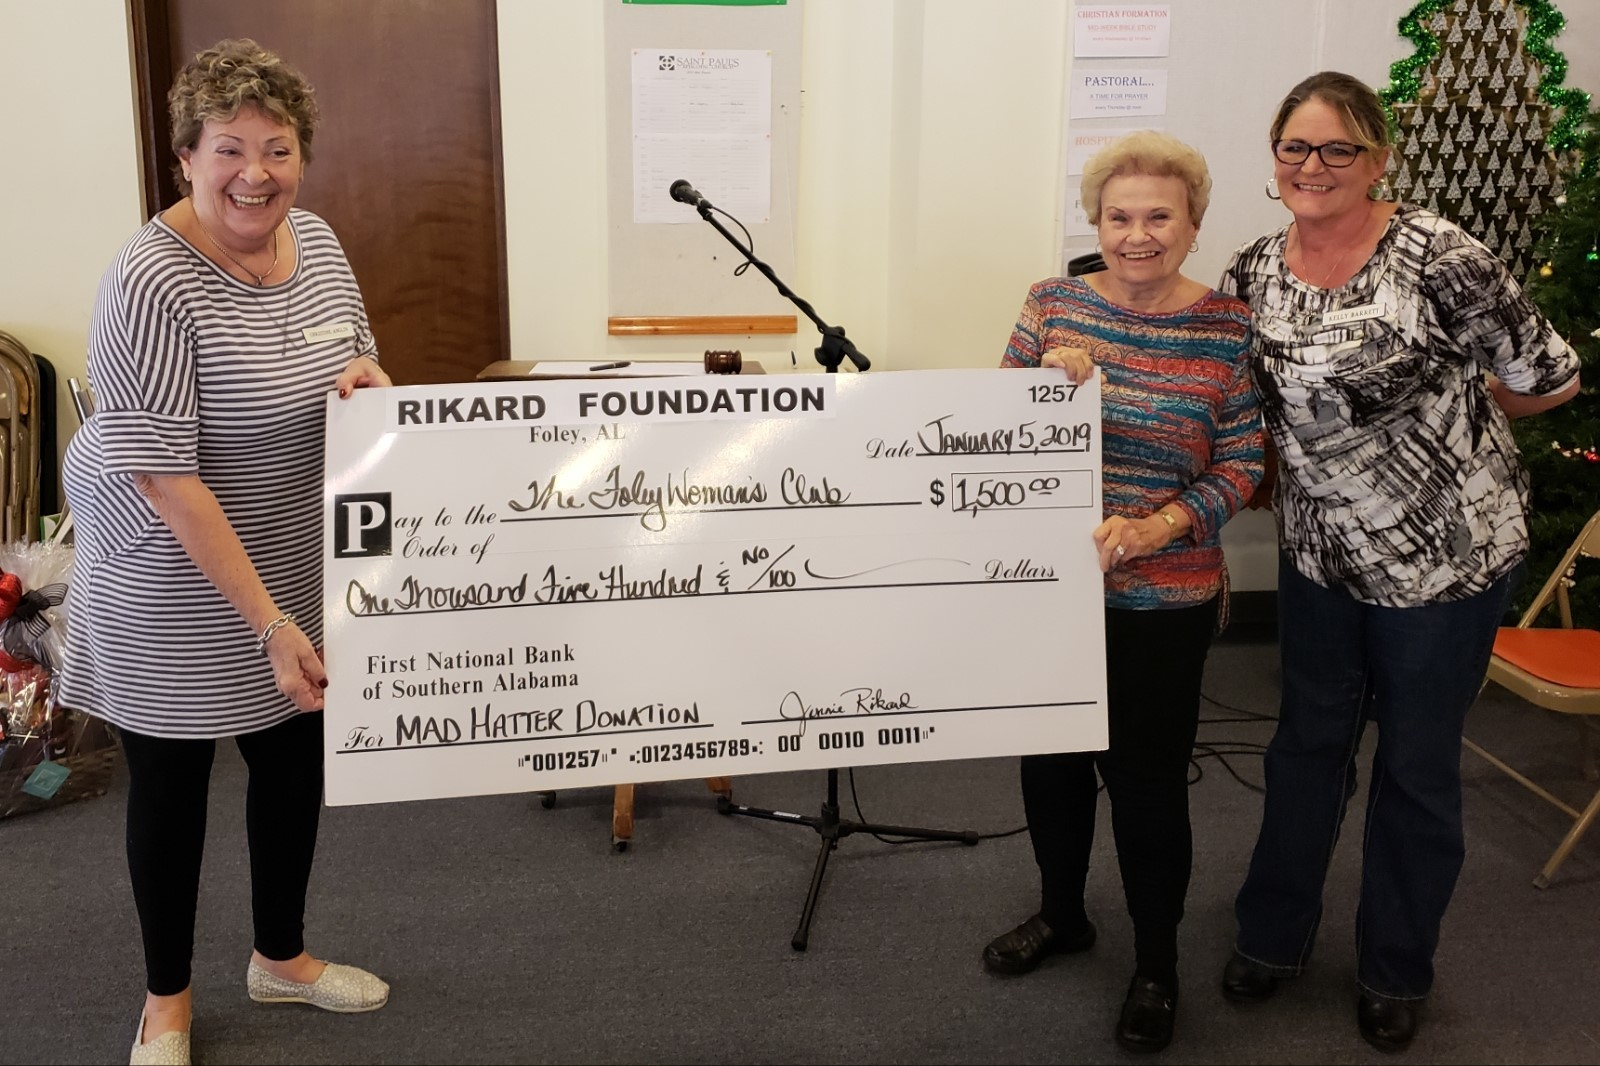 Chris Anglin and Kelly Barrett with Jennie Rikard presenting the generous check to the Club.